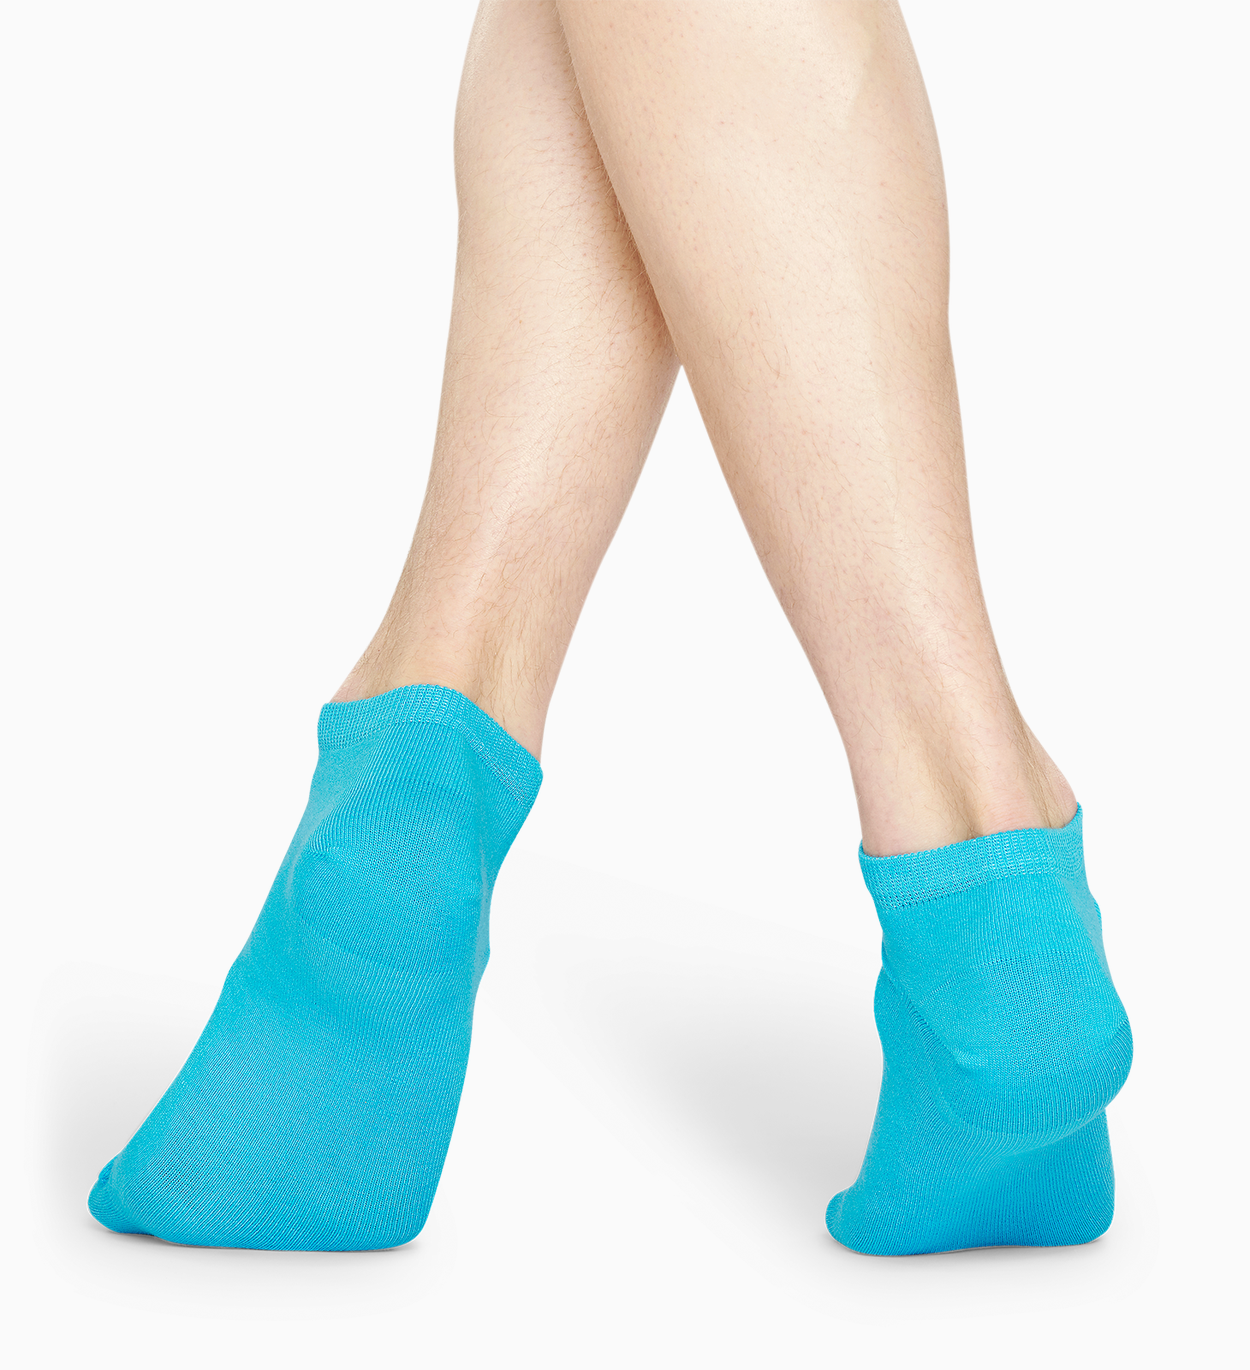 Calzini 2 paia Blu Navy: modello Smile Heart | Happy Socks